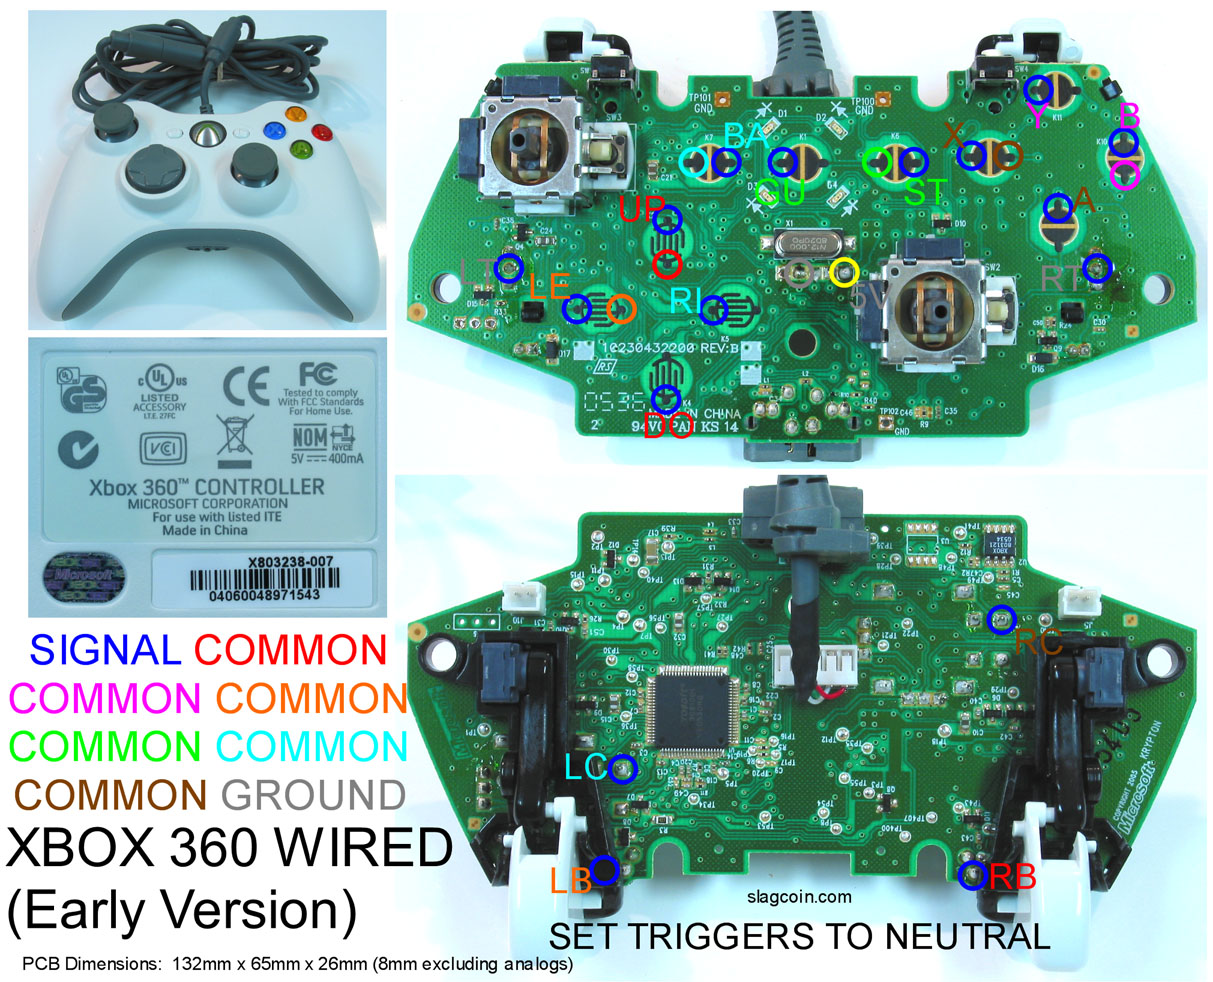 gaming, gadgets, and mods xbox 360 and original xbox controller pcb xbox 360 wireless controller gaming, gadgets, and mods